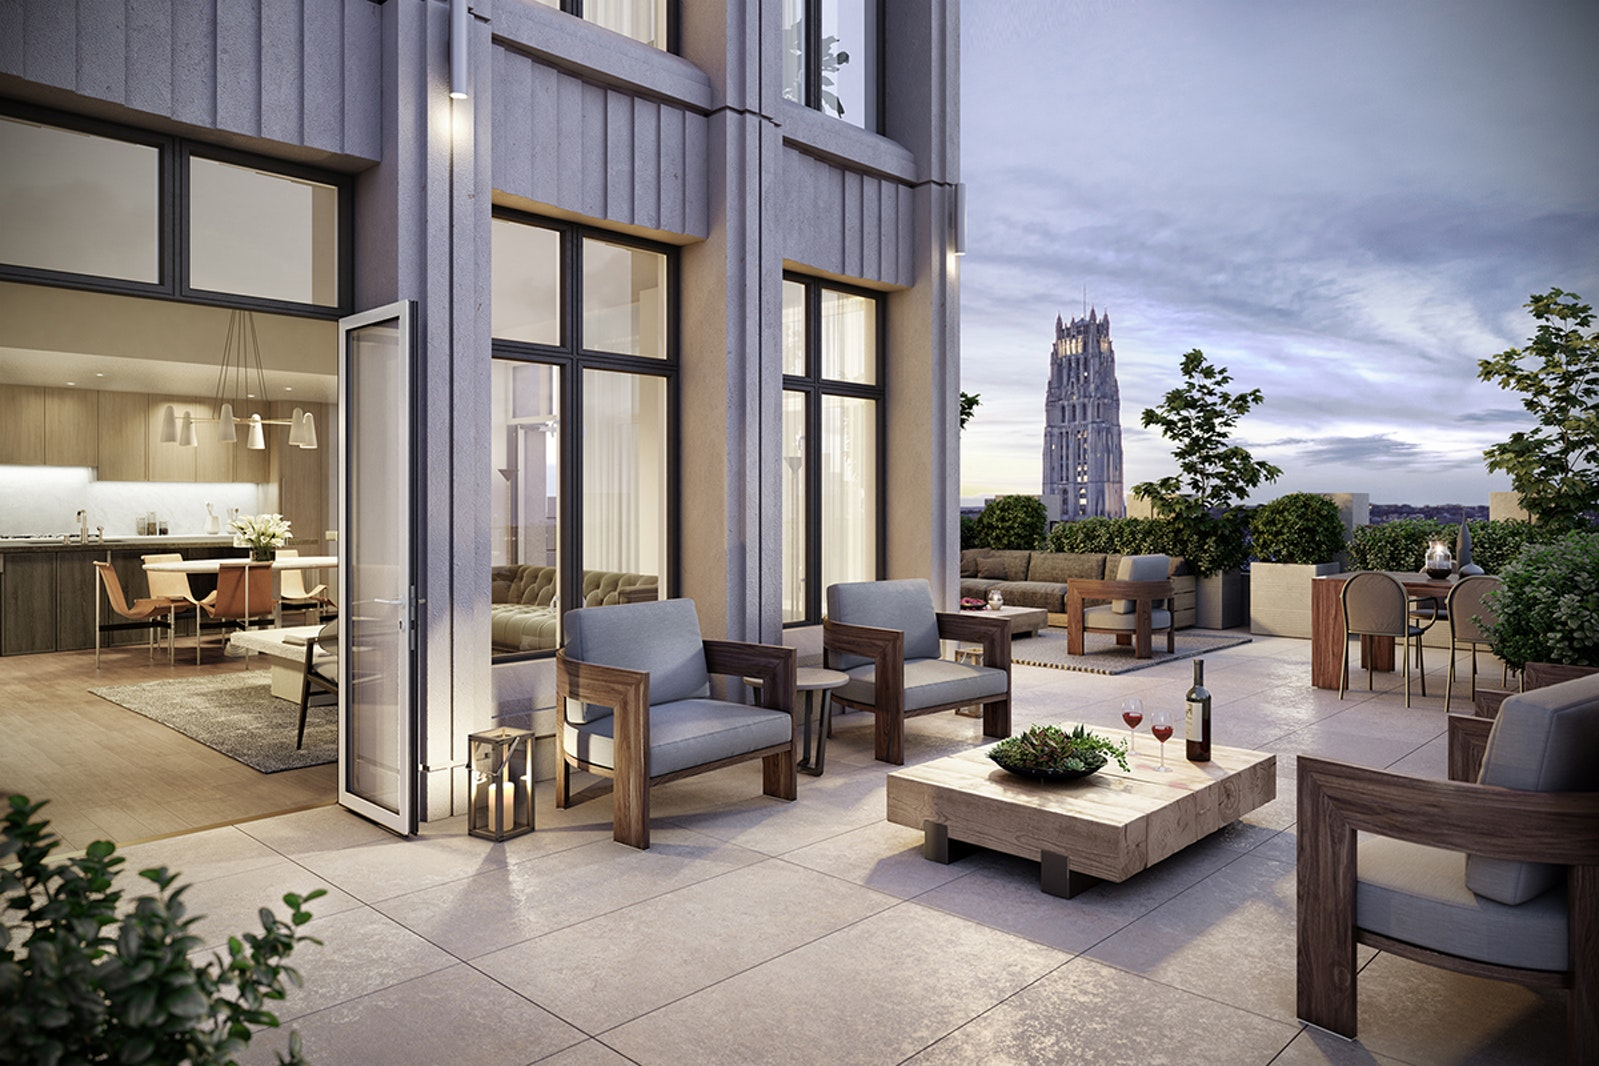 543 West 122nd Street 17e, Upper Manhattan, NYC, 10027, $2,875,000, Property For Sale, Halstead Real Estate, Photo 1